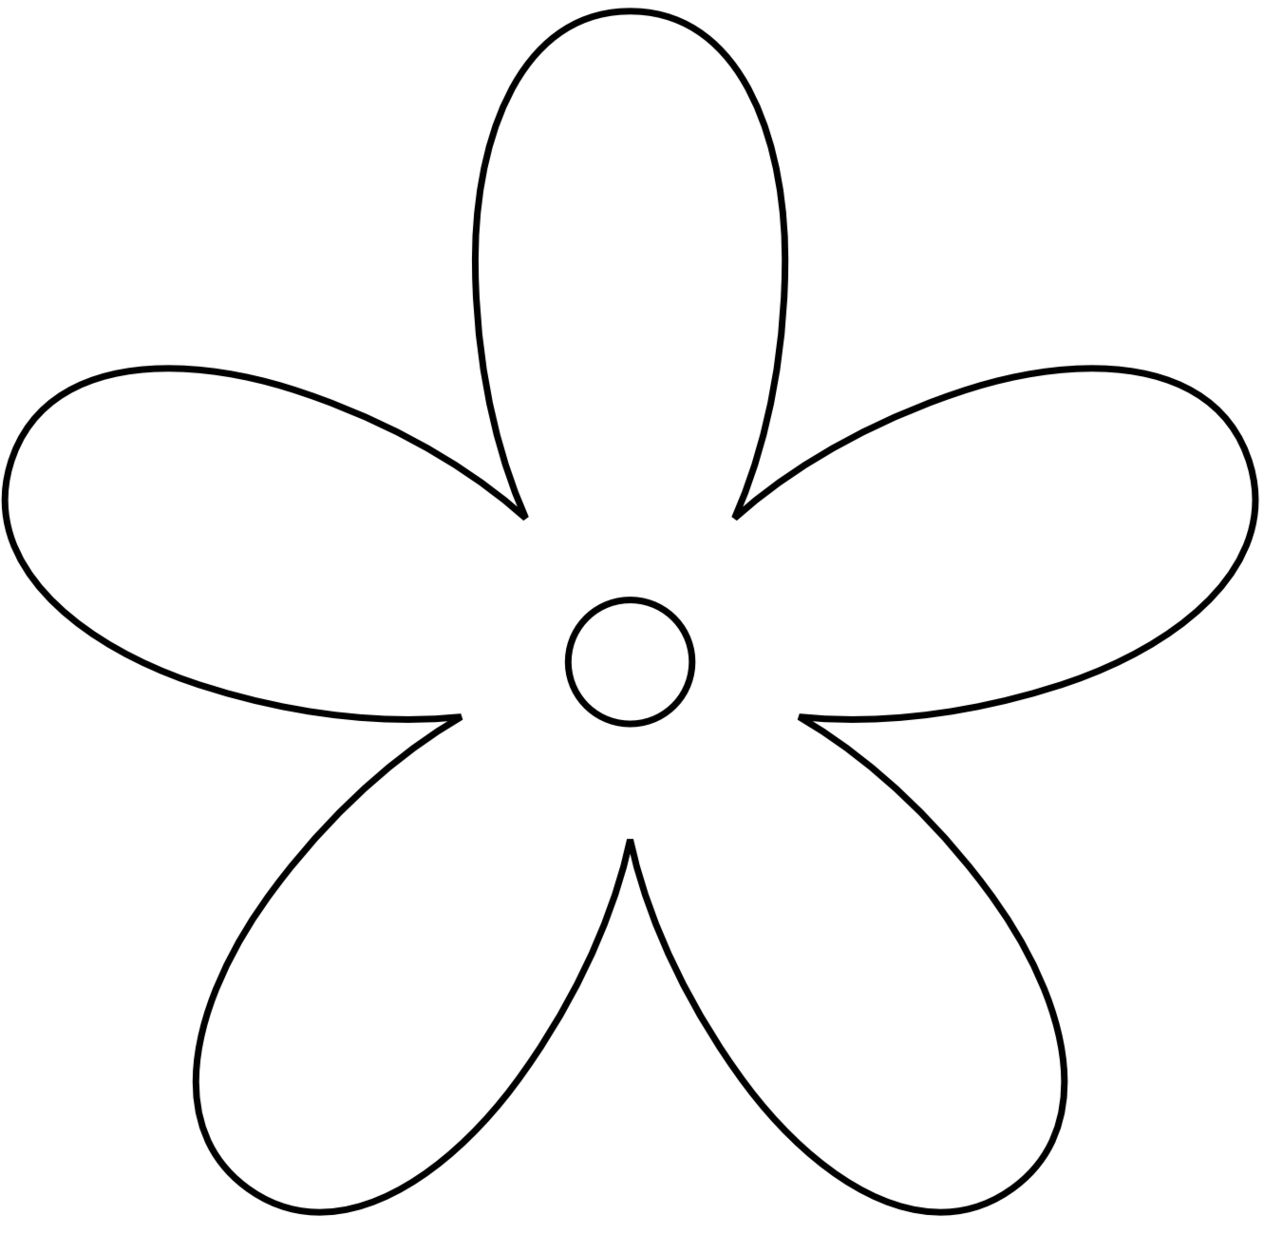 Simple black and white flower clipart clipground black and white flower clip art black and white flower clip mightylinksfo Choice Image